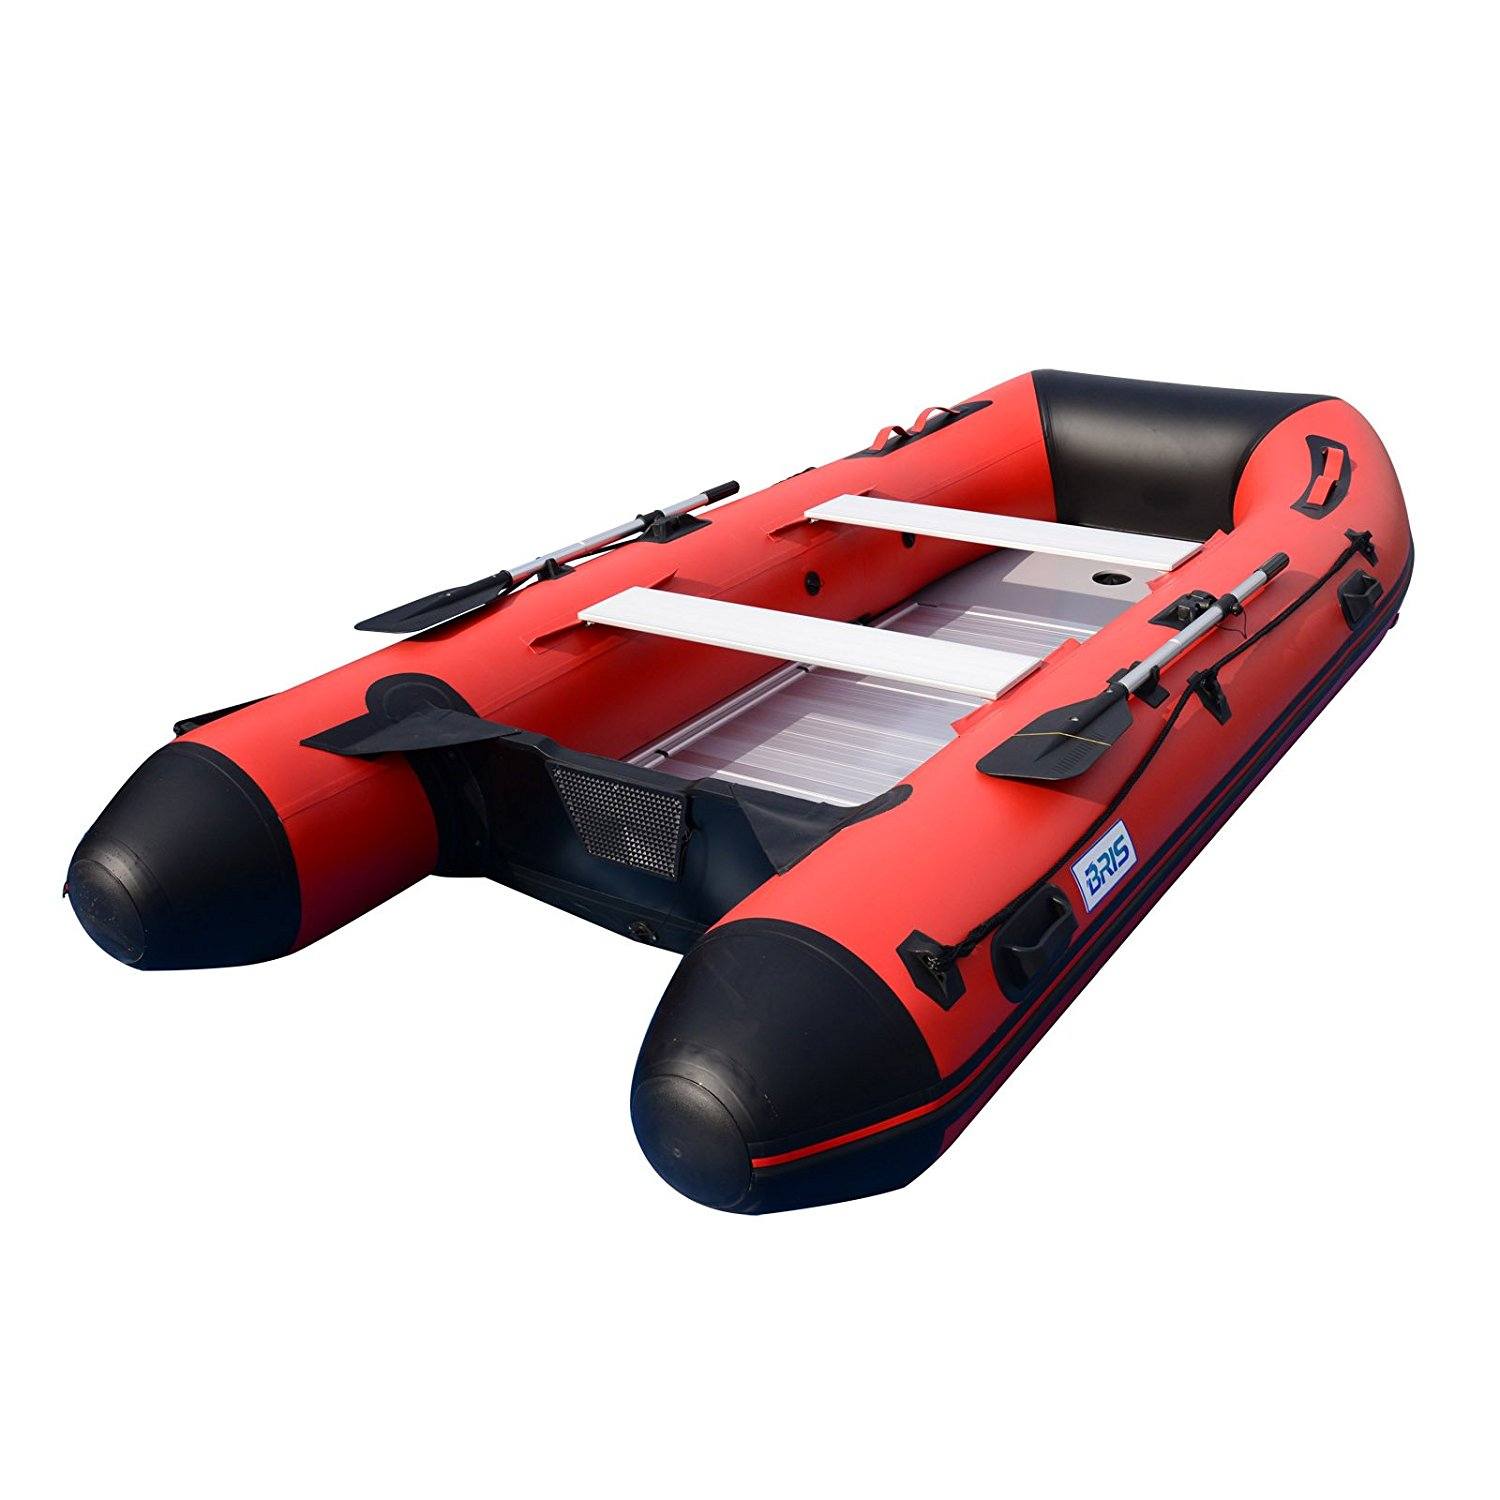 BRIS 12Ft Inflatable Boat Dinghy Raft Pontoon Rescue Dive Fishing Boat